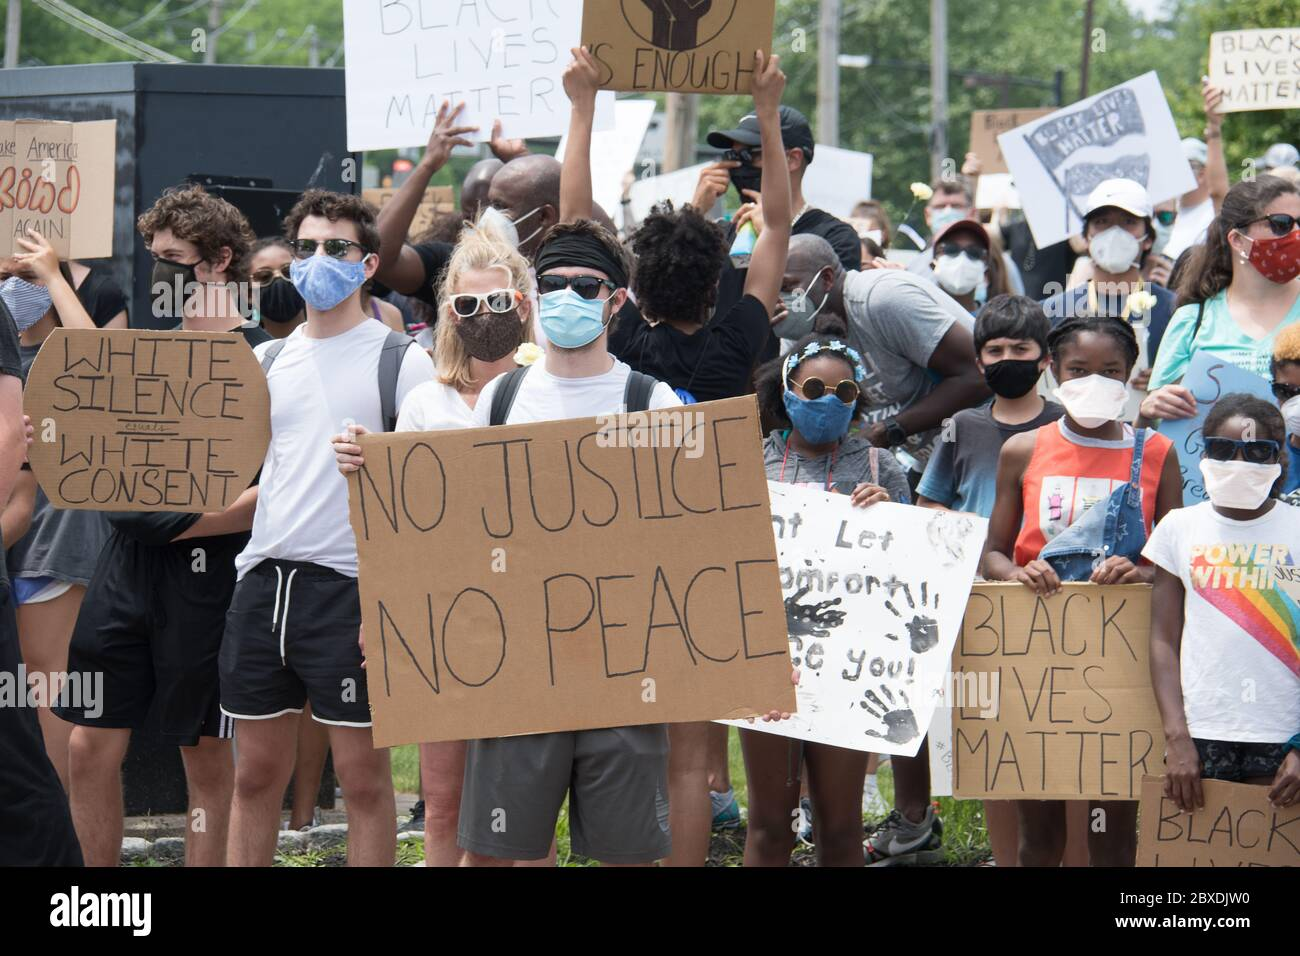 06 June 2020 - Newtown, Pennsylvania, USA - BLM, Black Lives Matter protest, protest after the murder of George Floyd in Minneapolis. Stock Photo